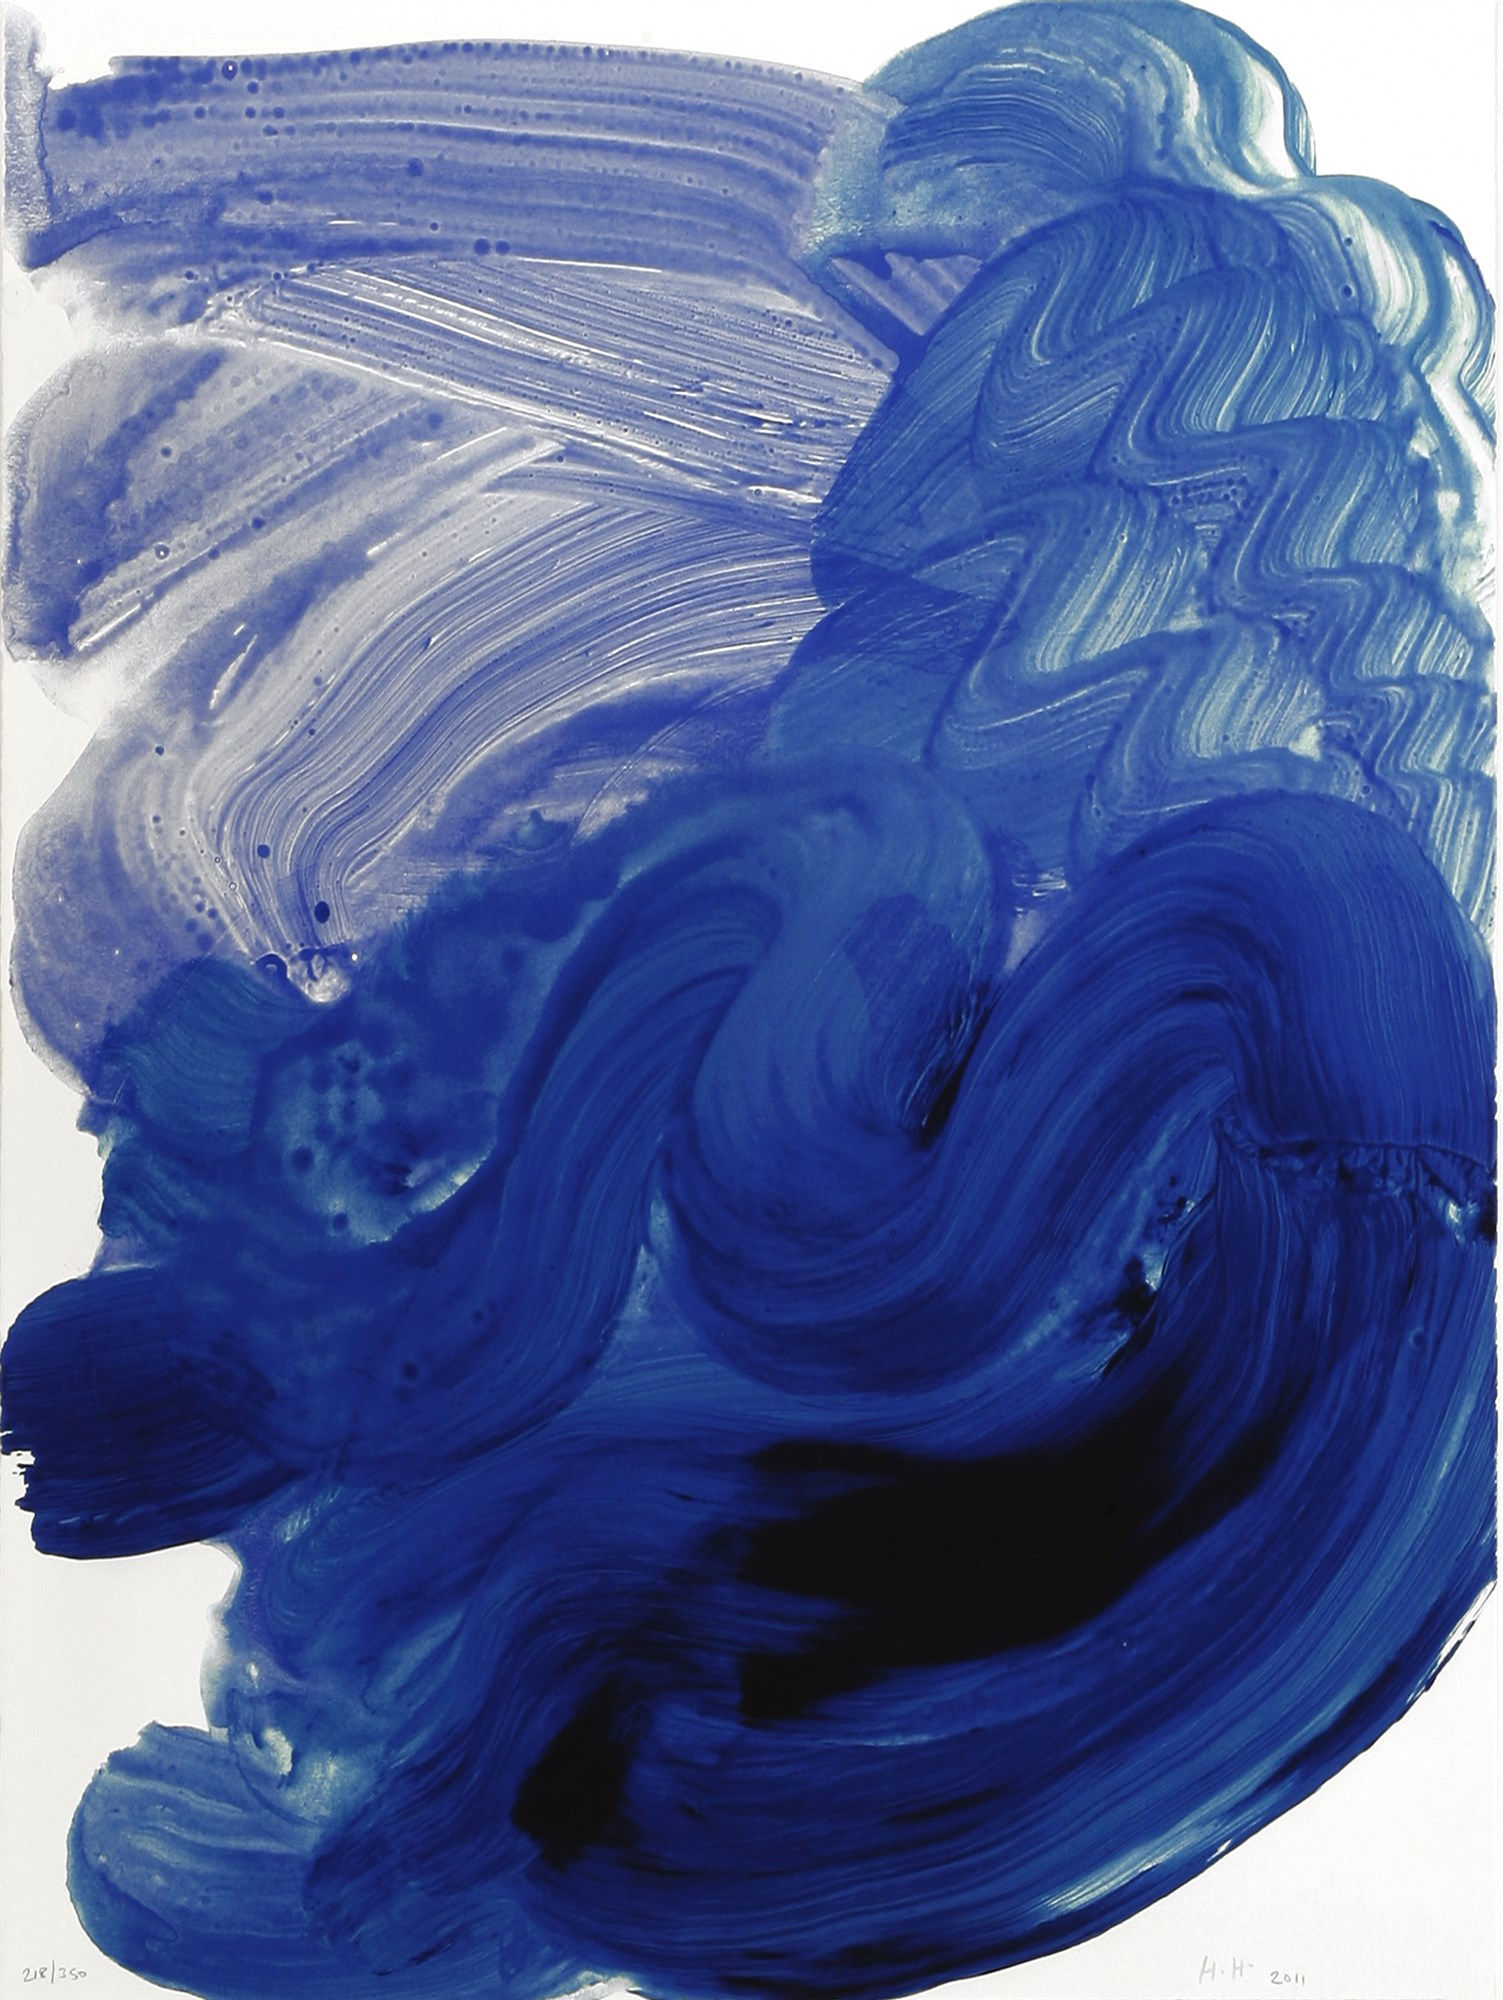 Howard Hodgkin SWIMMING screenprint